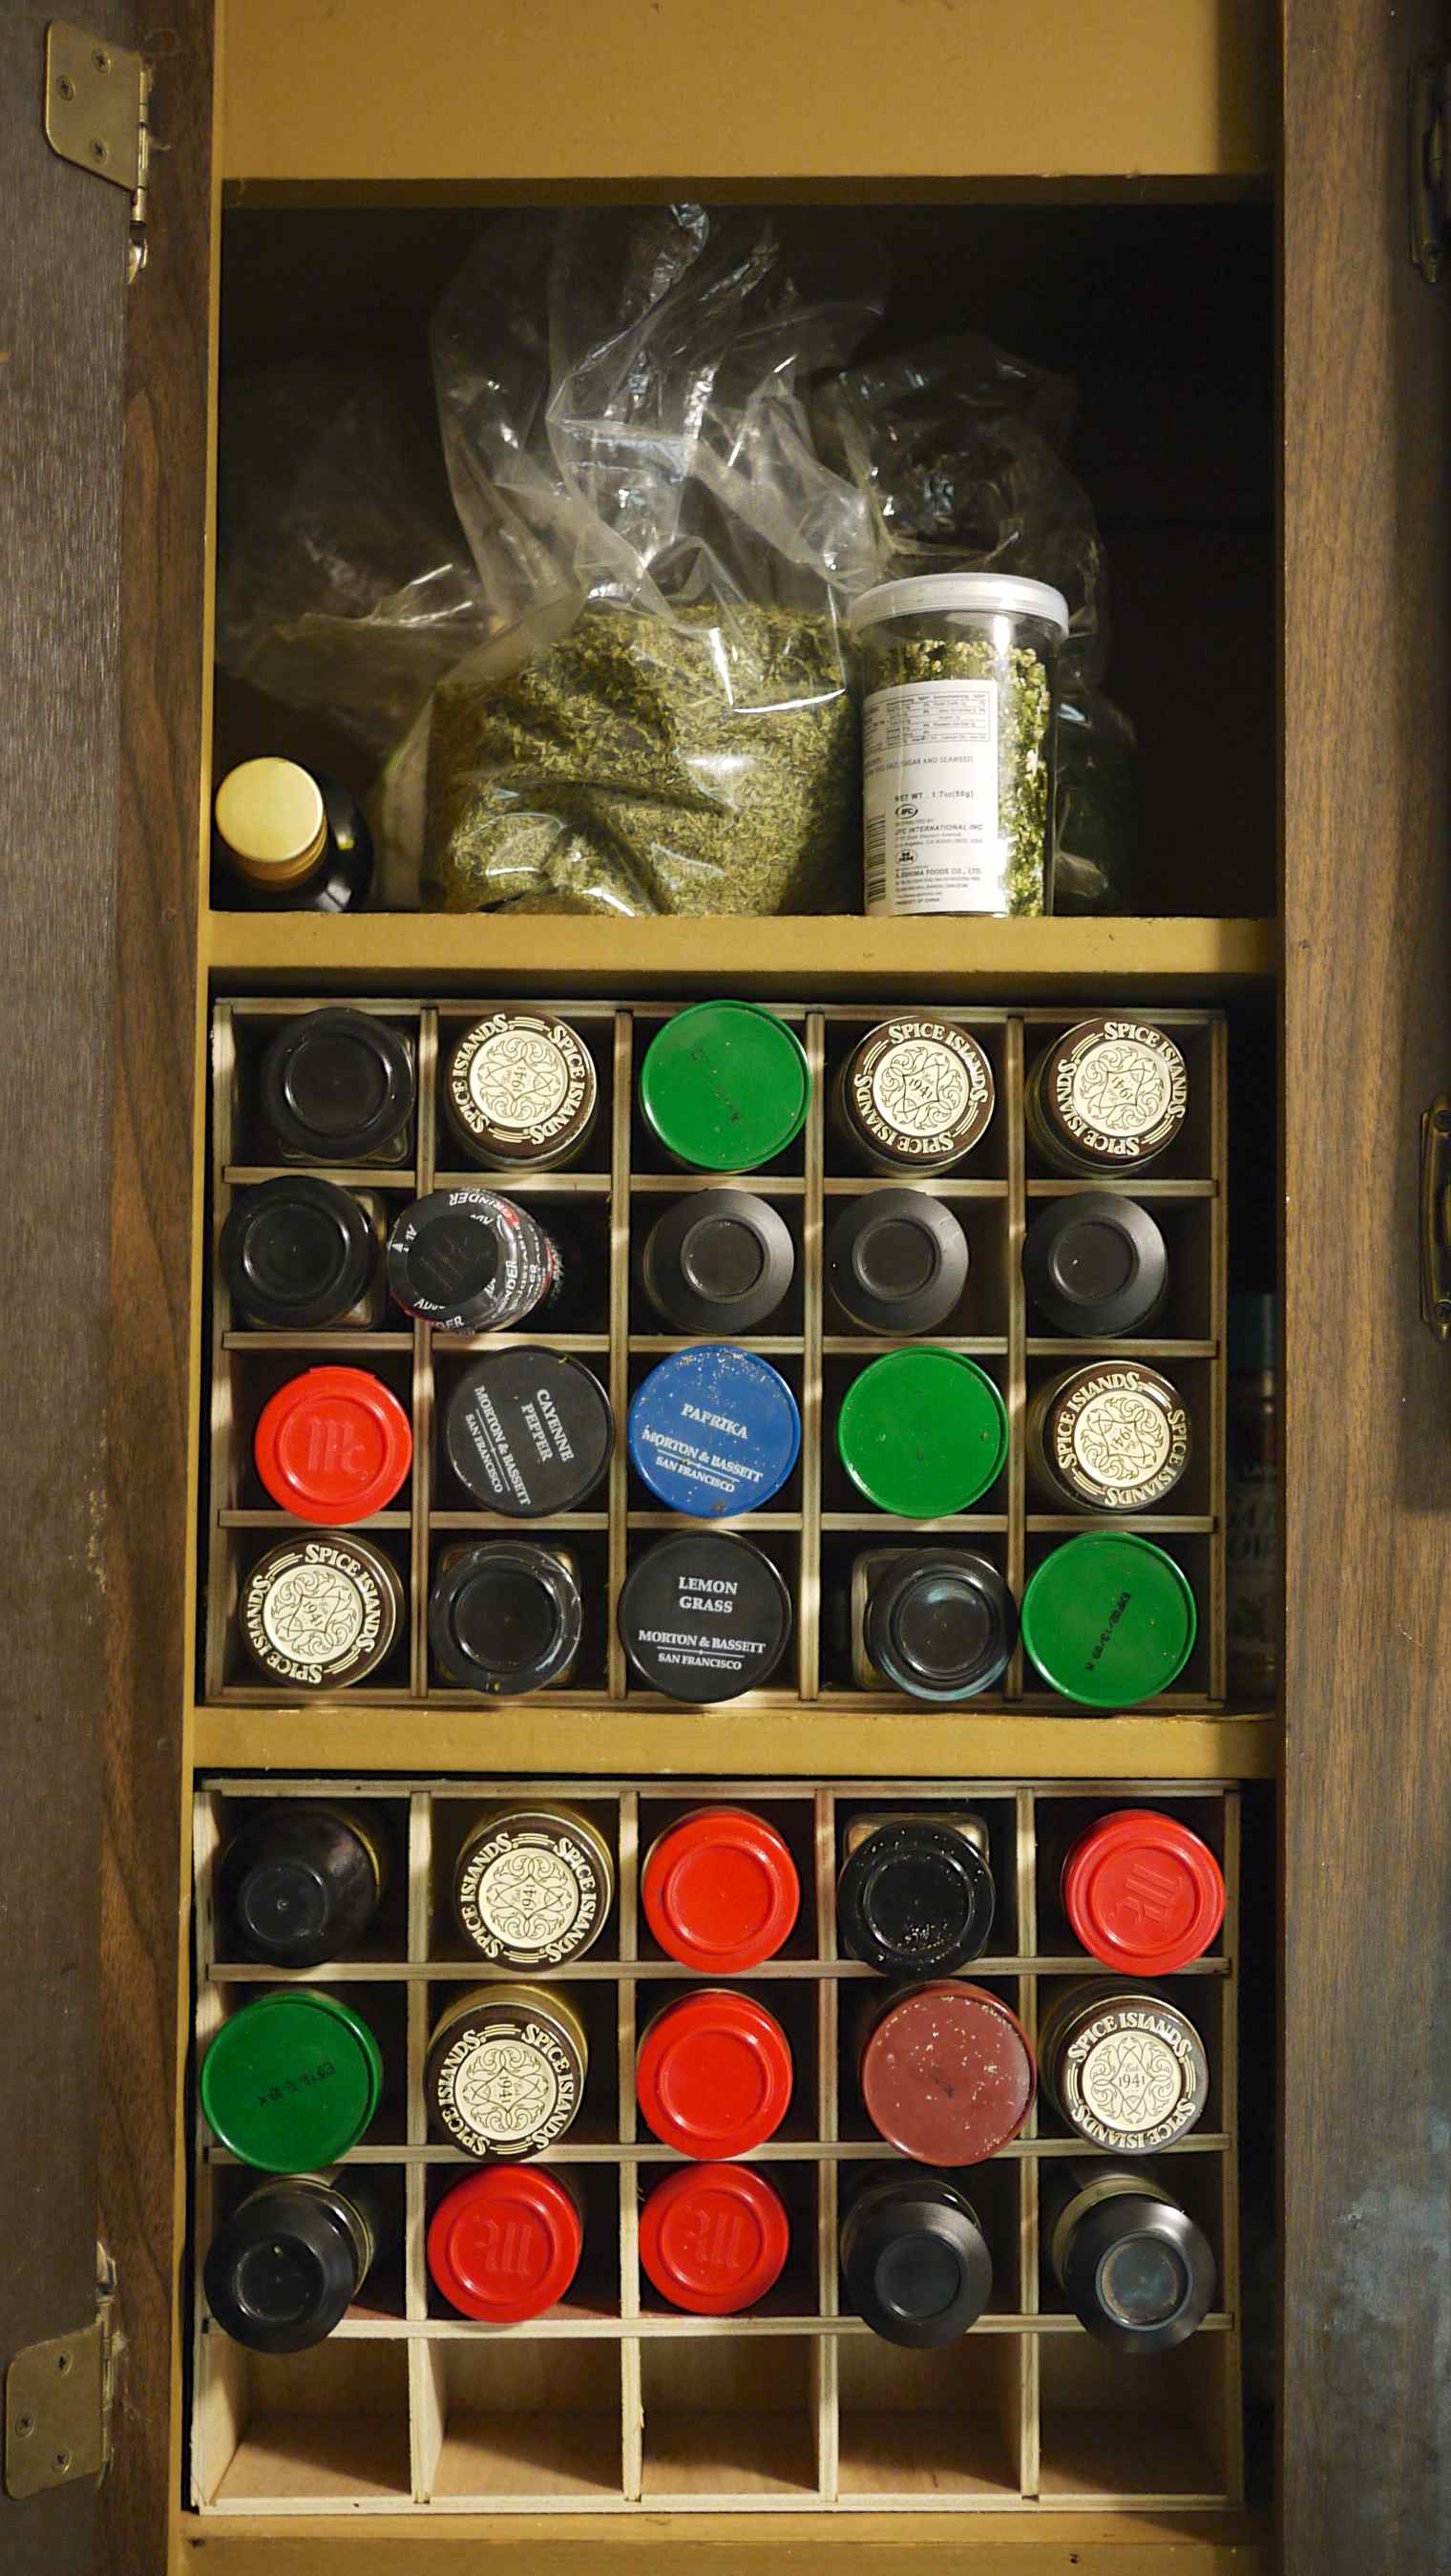 A cupboard spice organizer - made at Techshop